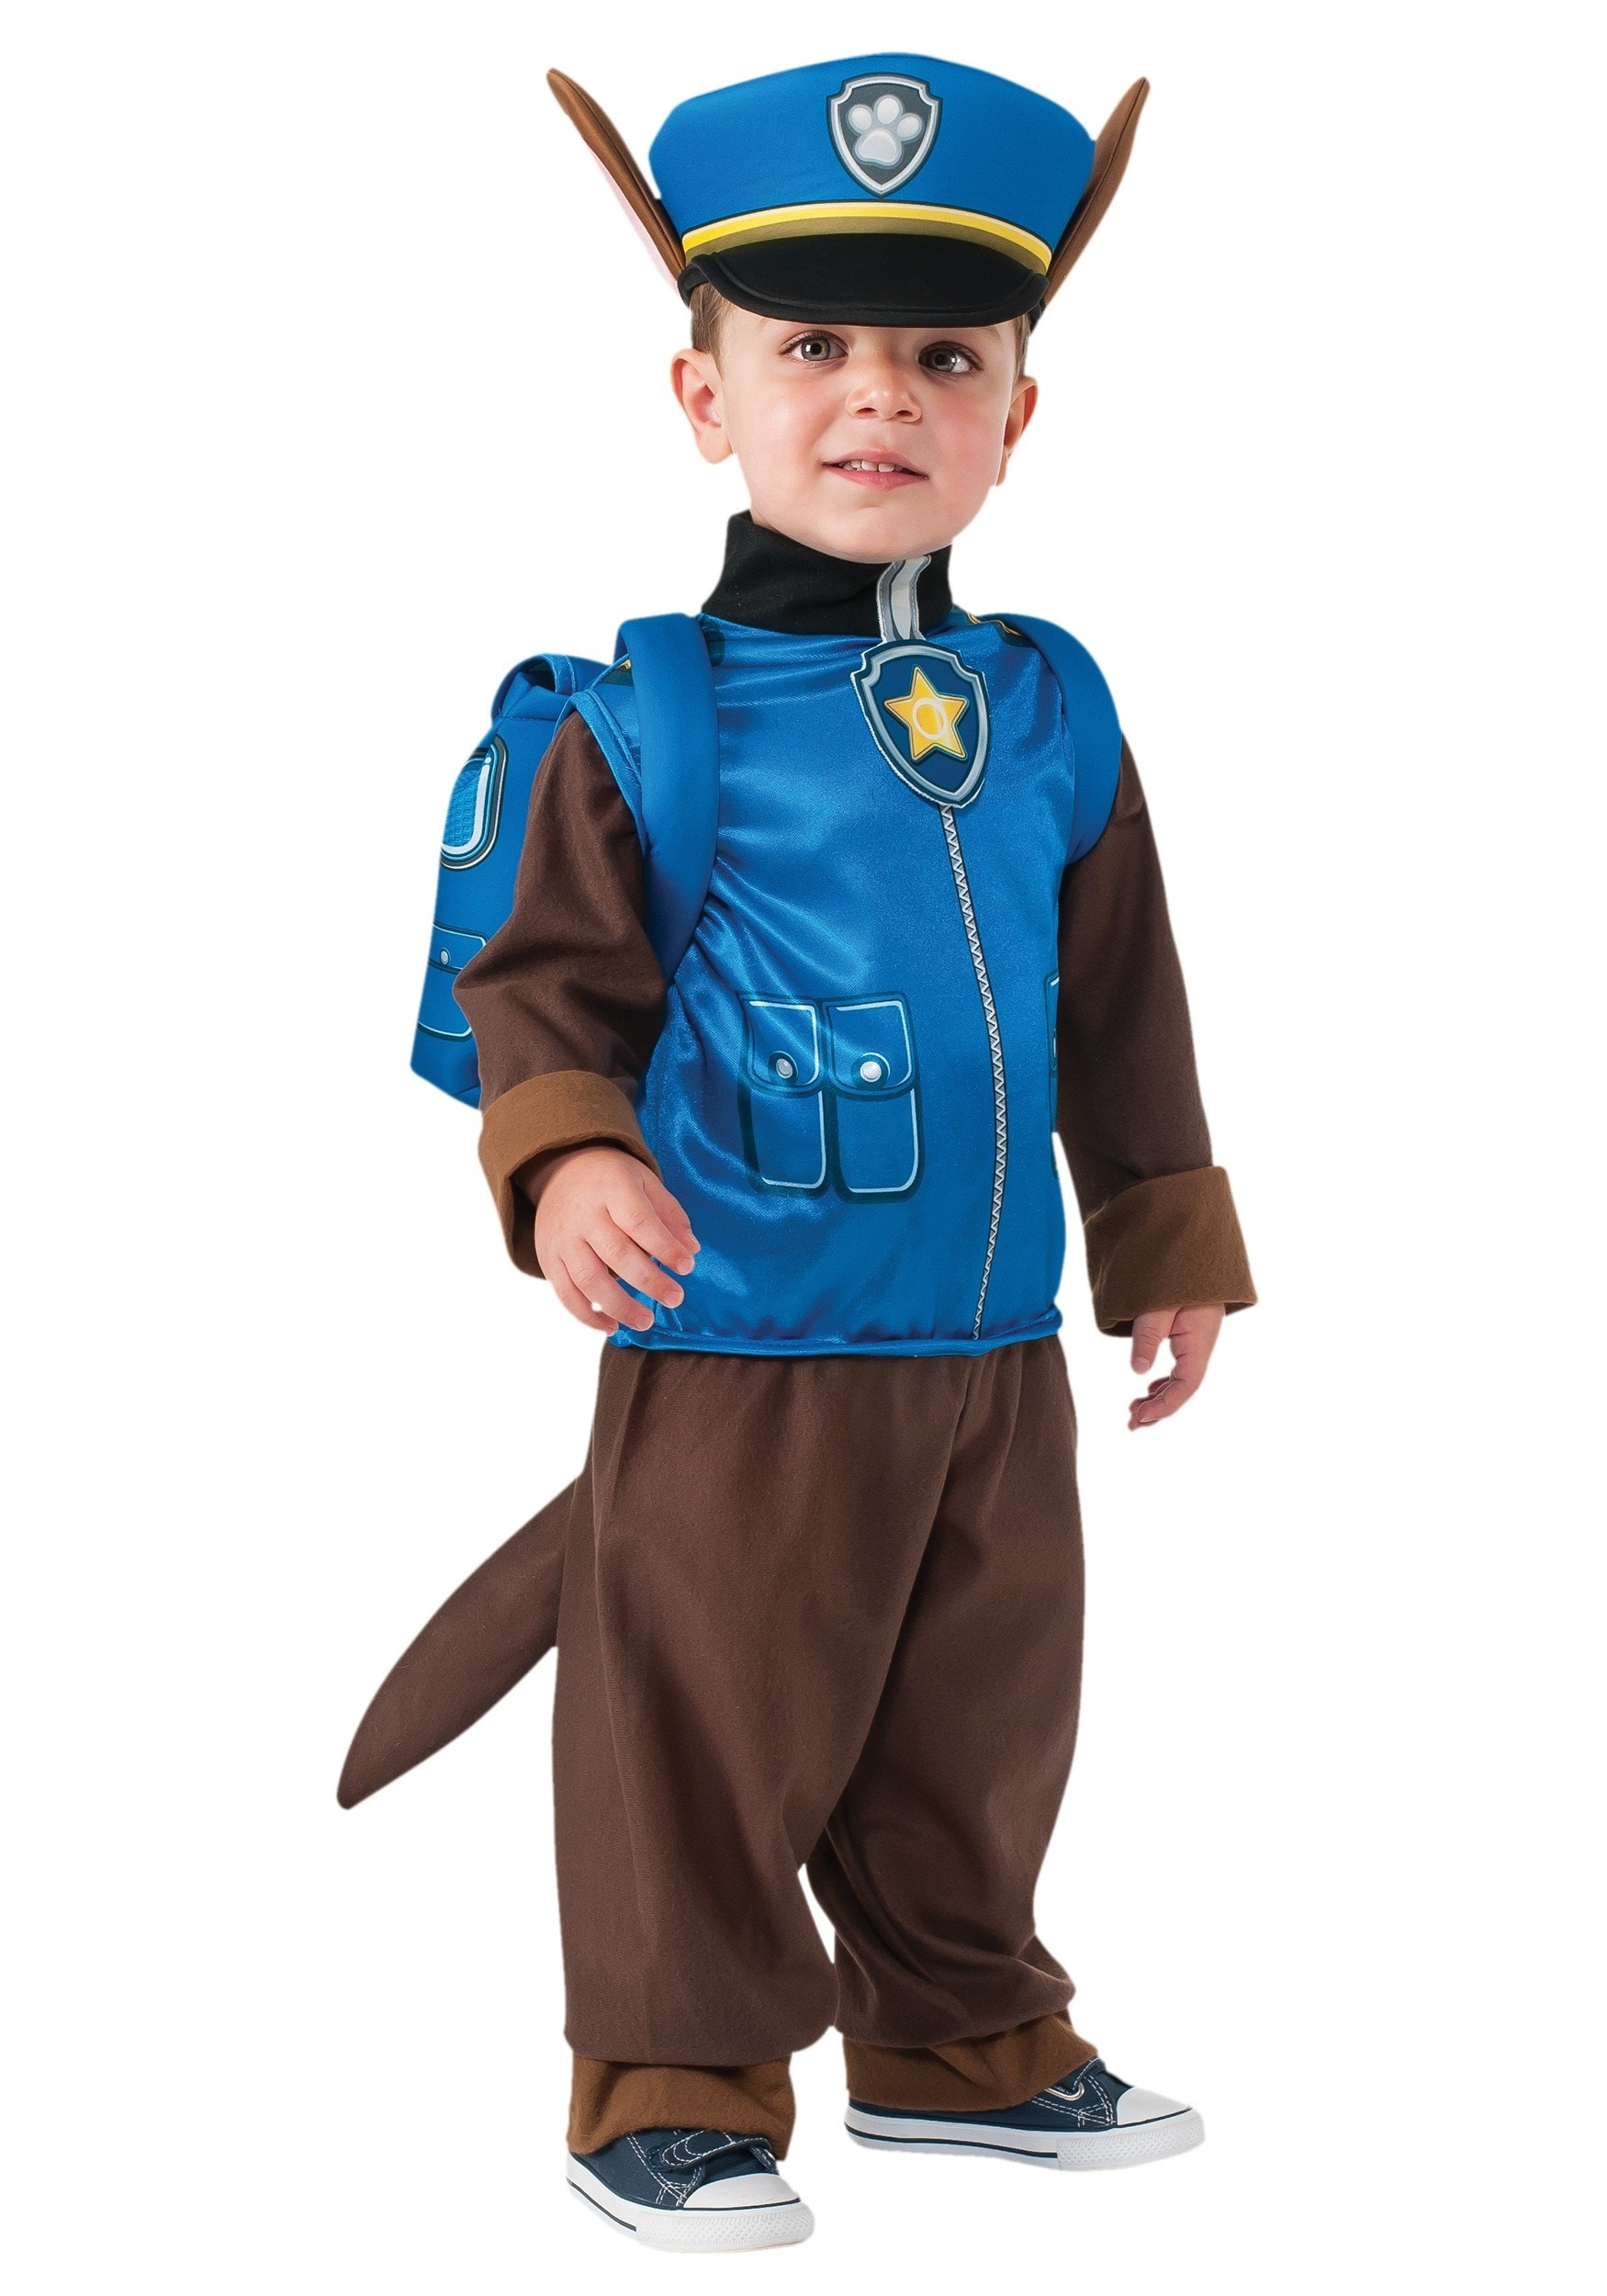 Paw Patrol Chase Child Costume  sc 1 st  Halloween Costumes & Child Police Costumes - Kidu0027s Cop Halloween Costume